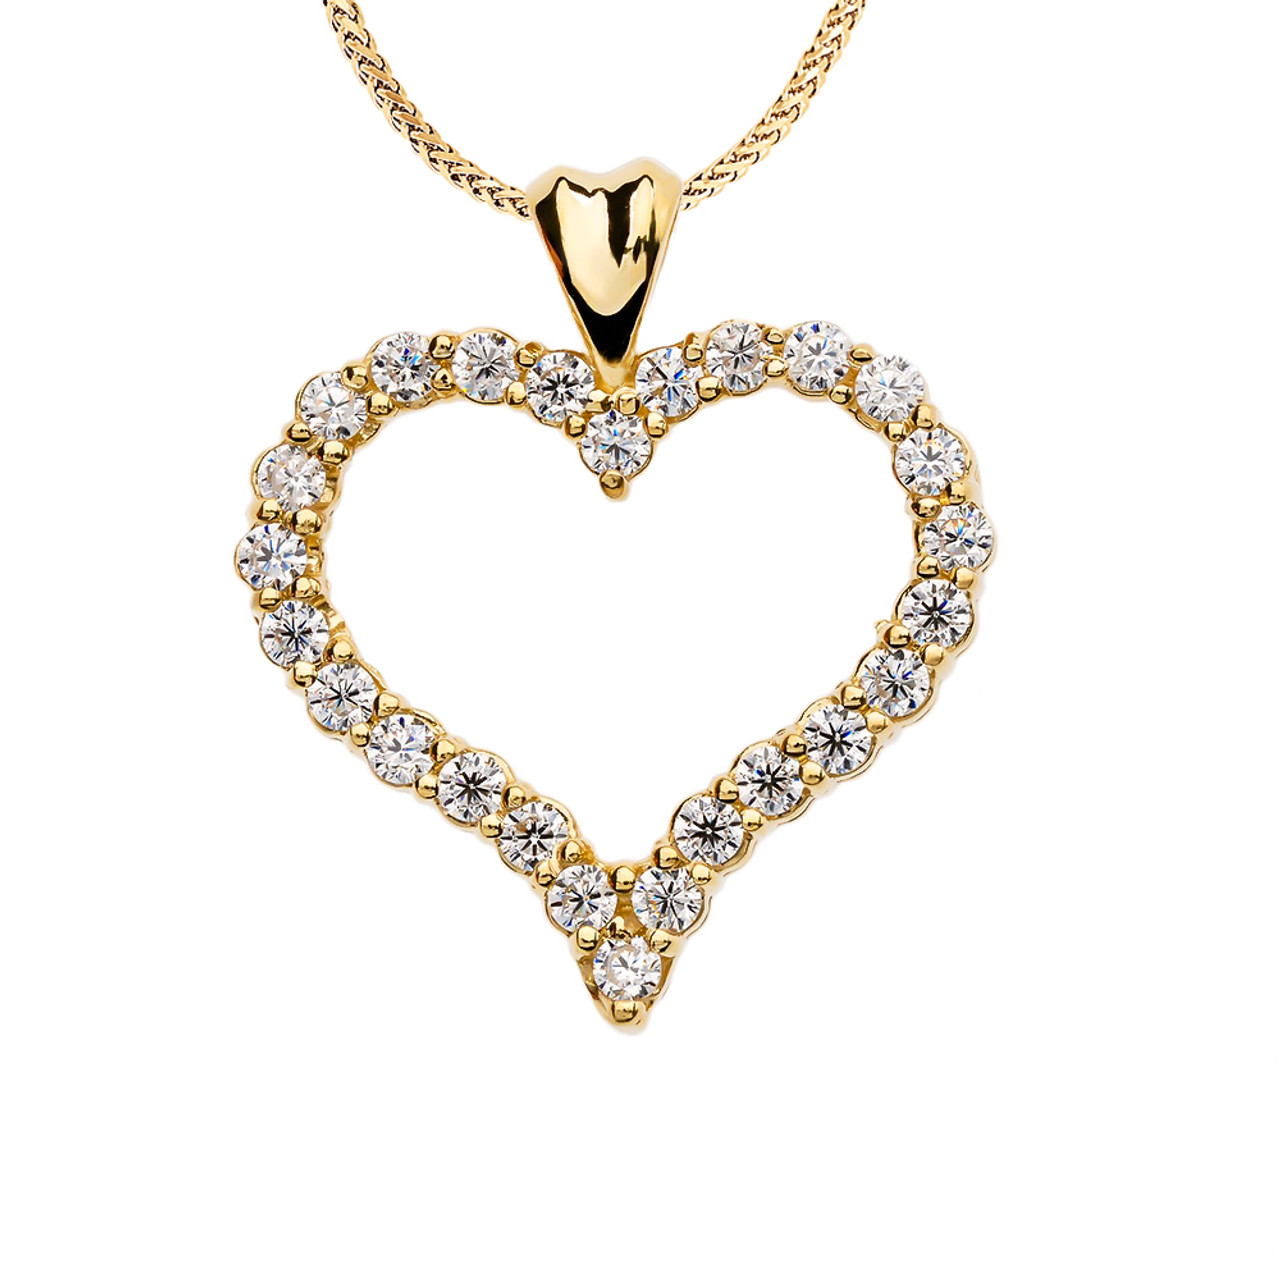 Diamond yellow gold heart pendant necklace 1 carat diamond heart yellow gold pendant necklace aloadofball Images